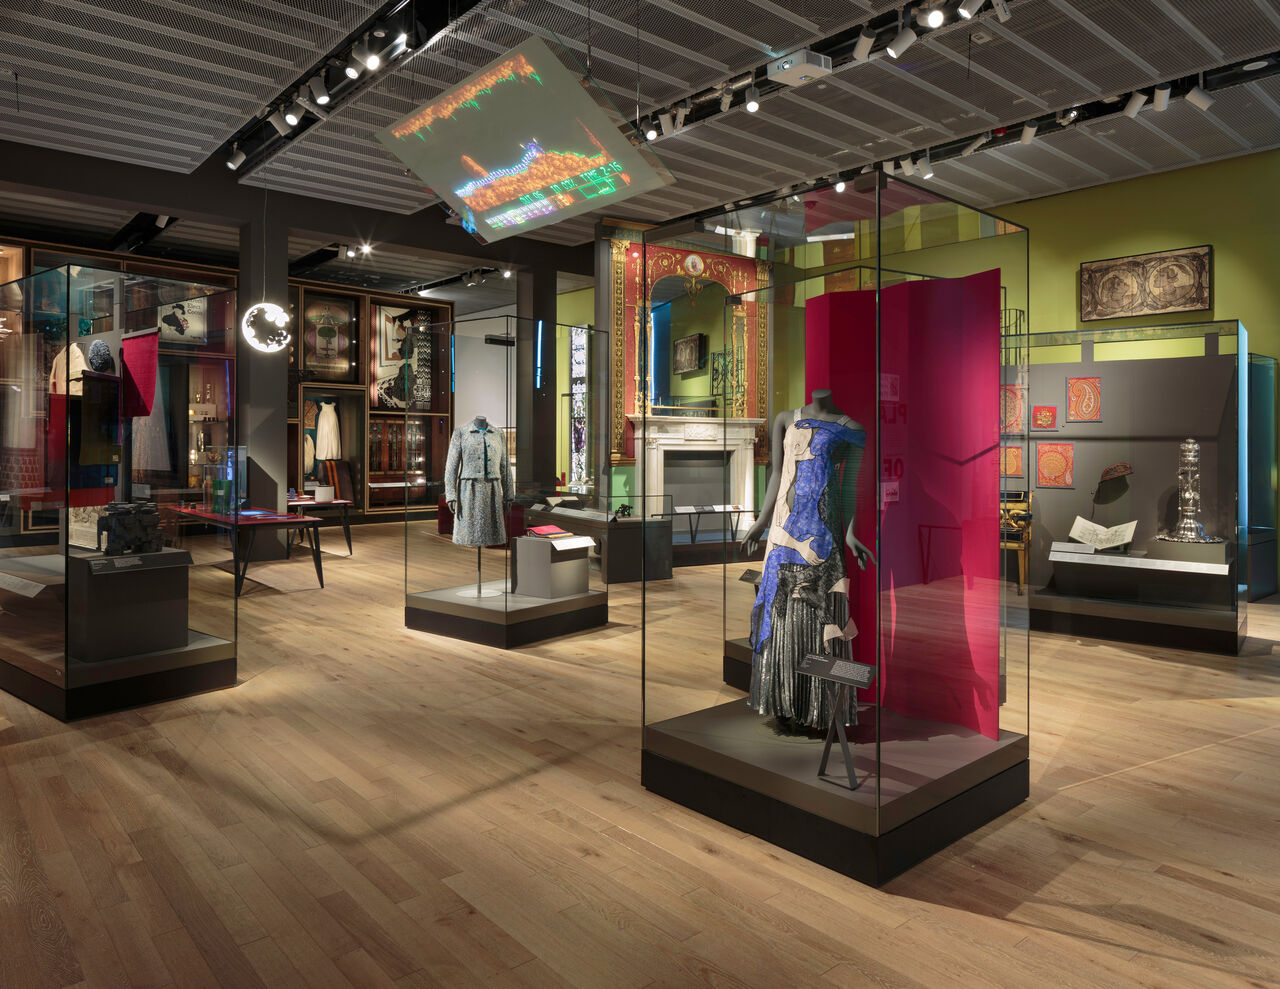 Photo of the Scottish Design Galleries at V&A Dundee. Many display cases show off objects exploring Scotland's design history, from fashion to textiles to ironwork to comics and furniture.